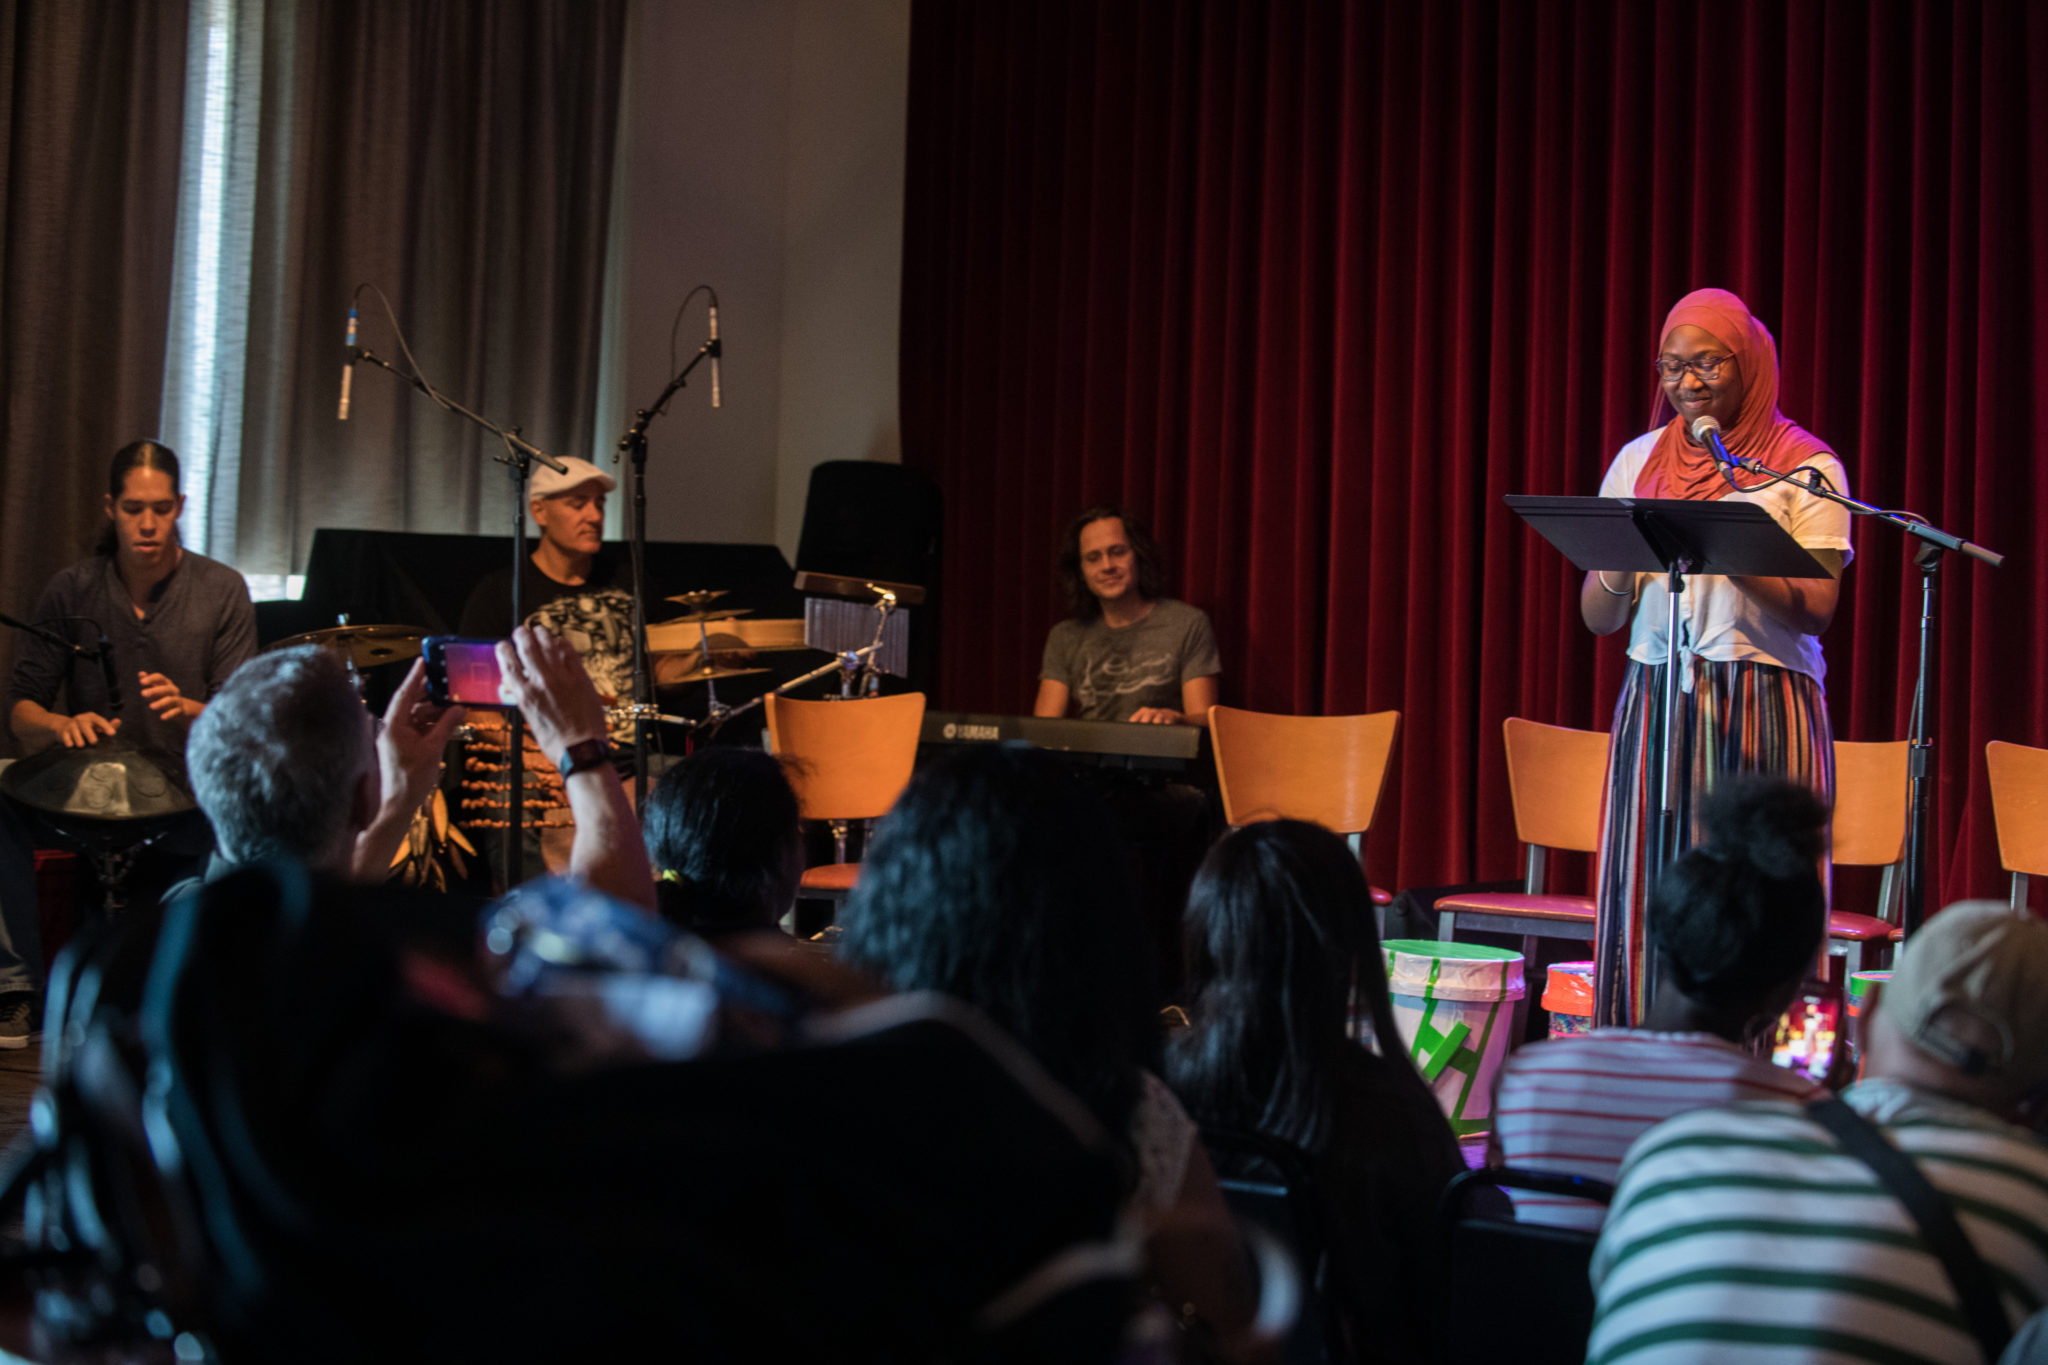 A student stands behind a mic and a music stand onstage to present her poem. To her left are Alex Shaw, Josh Robinson and Andrew Lipke accompanying her. In the foreground, an audience looks on.